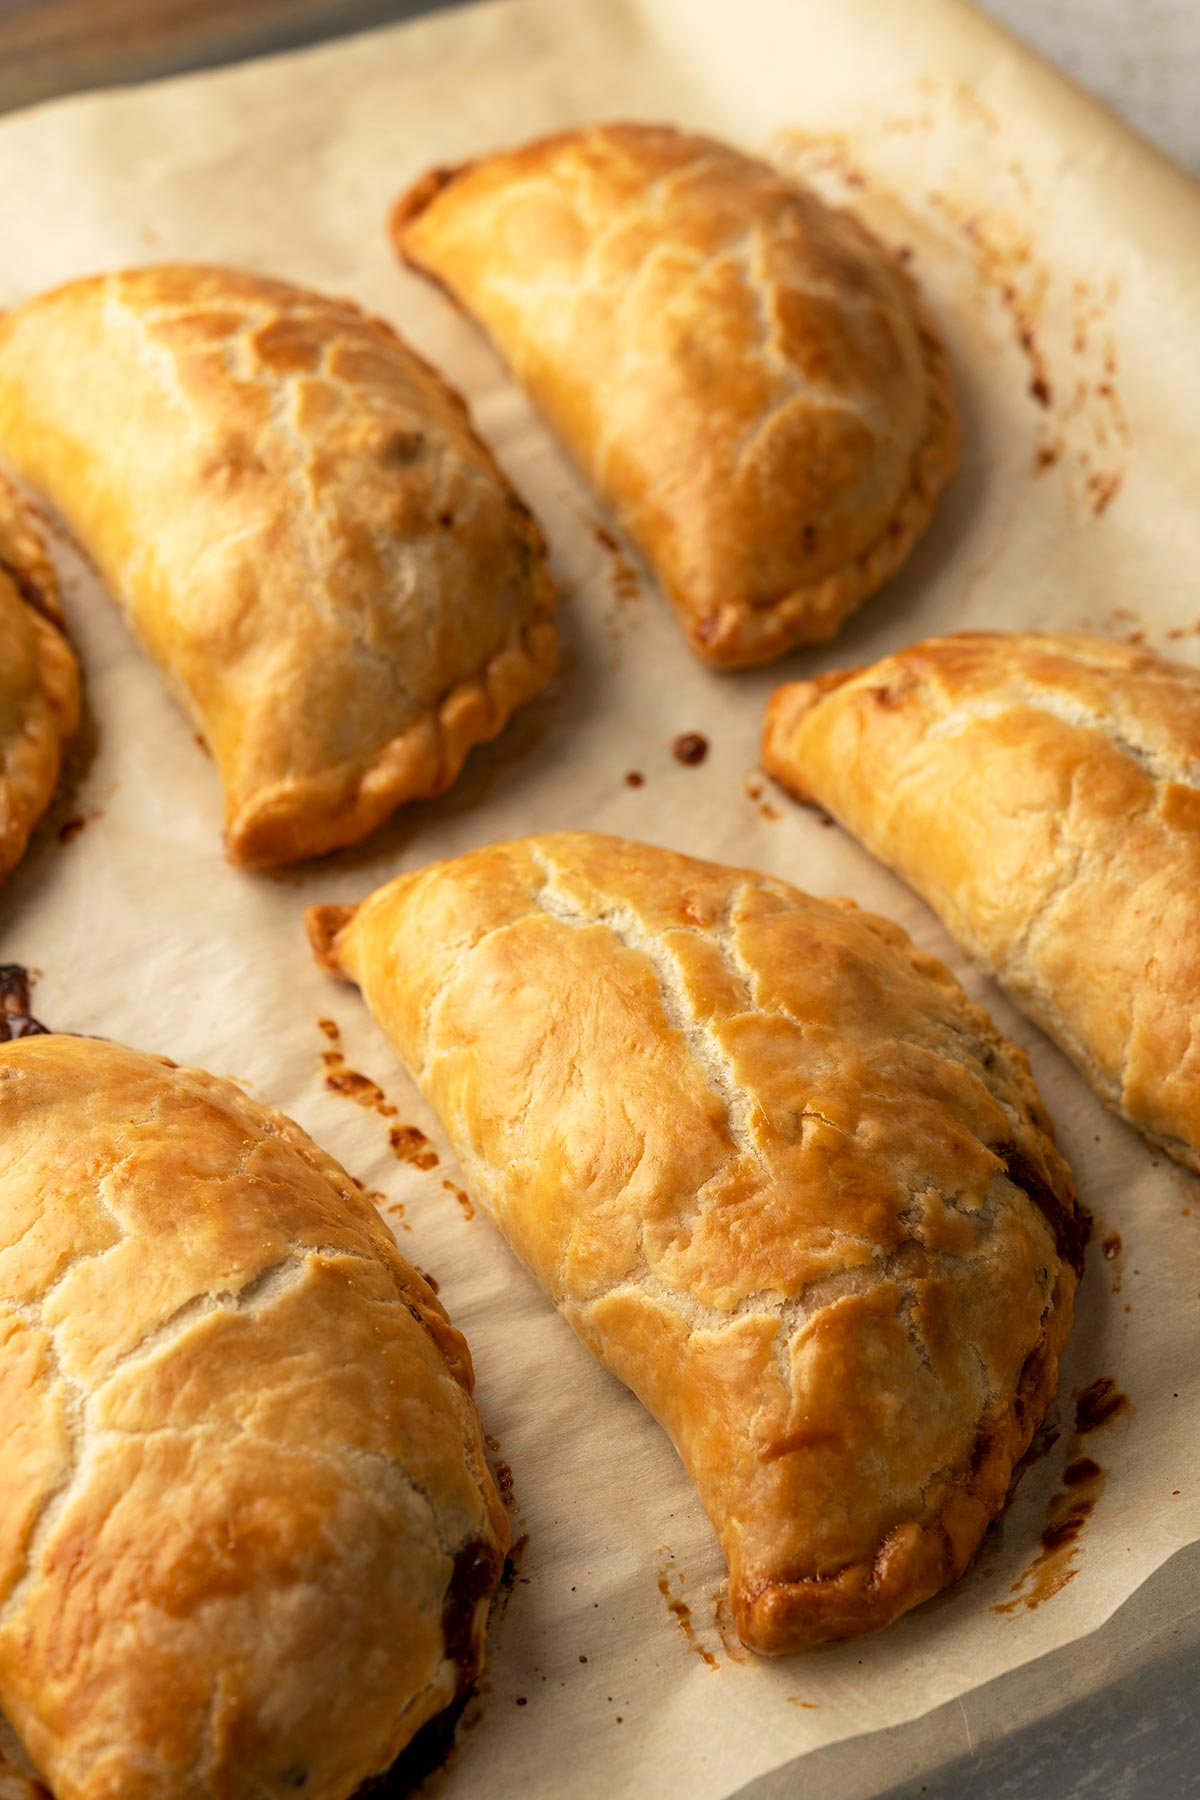 Finished pasty recipe, with pasties cooling on parchment paper